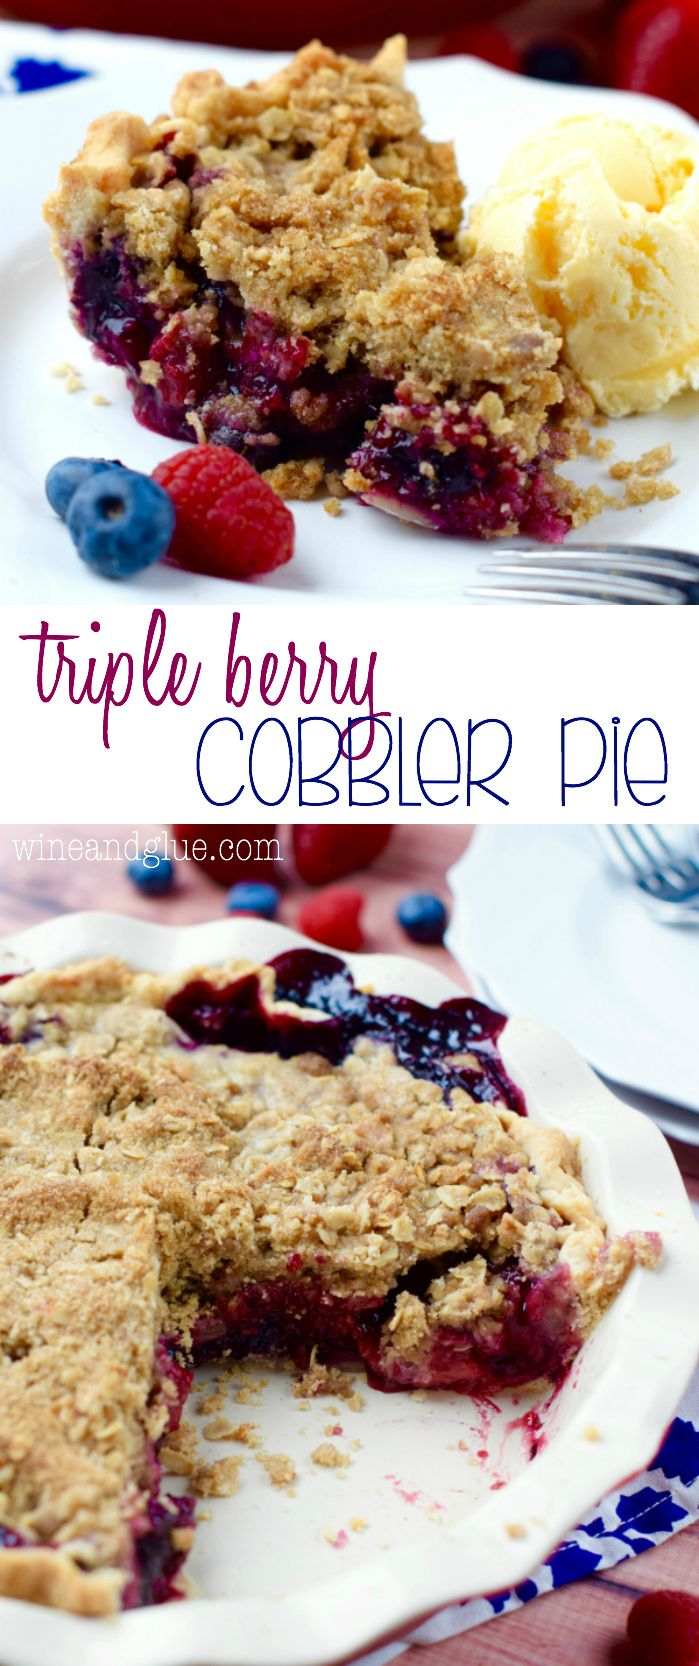 This Triple Berry Cobbler Pie combines the amazing flavors of blueberry, raspberry, and strawberries in an amazing pie with a crumble topping. It's like a cobbler and a pie combined, so good!: